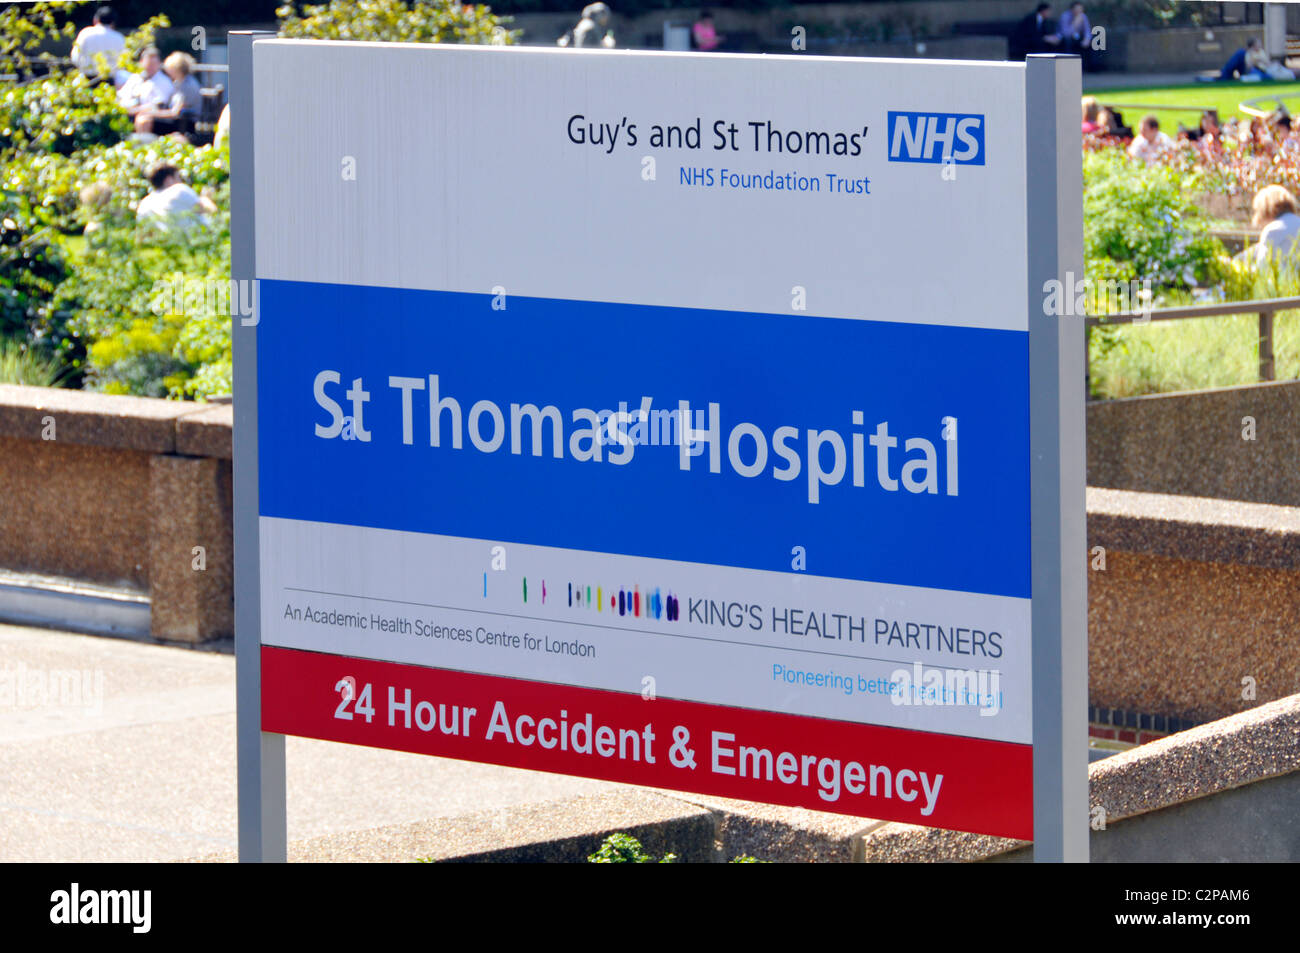 NHS sign St Thomas' Hospital with 24 hours Accident & Emergency department part of Guys and St Thomas Foundation - Stock Image